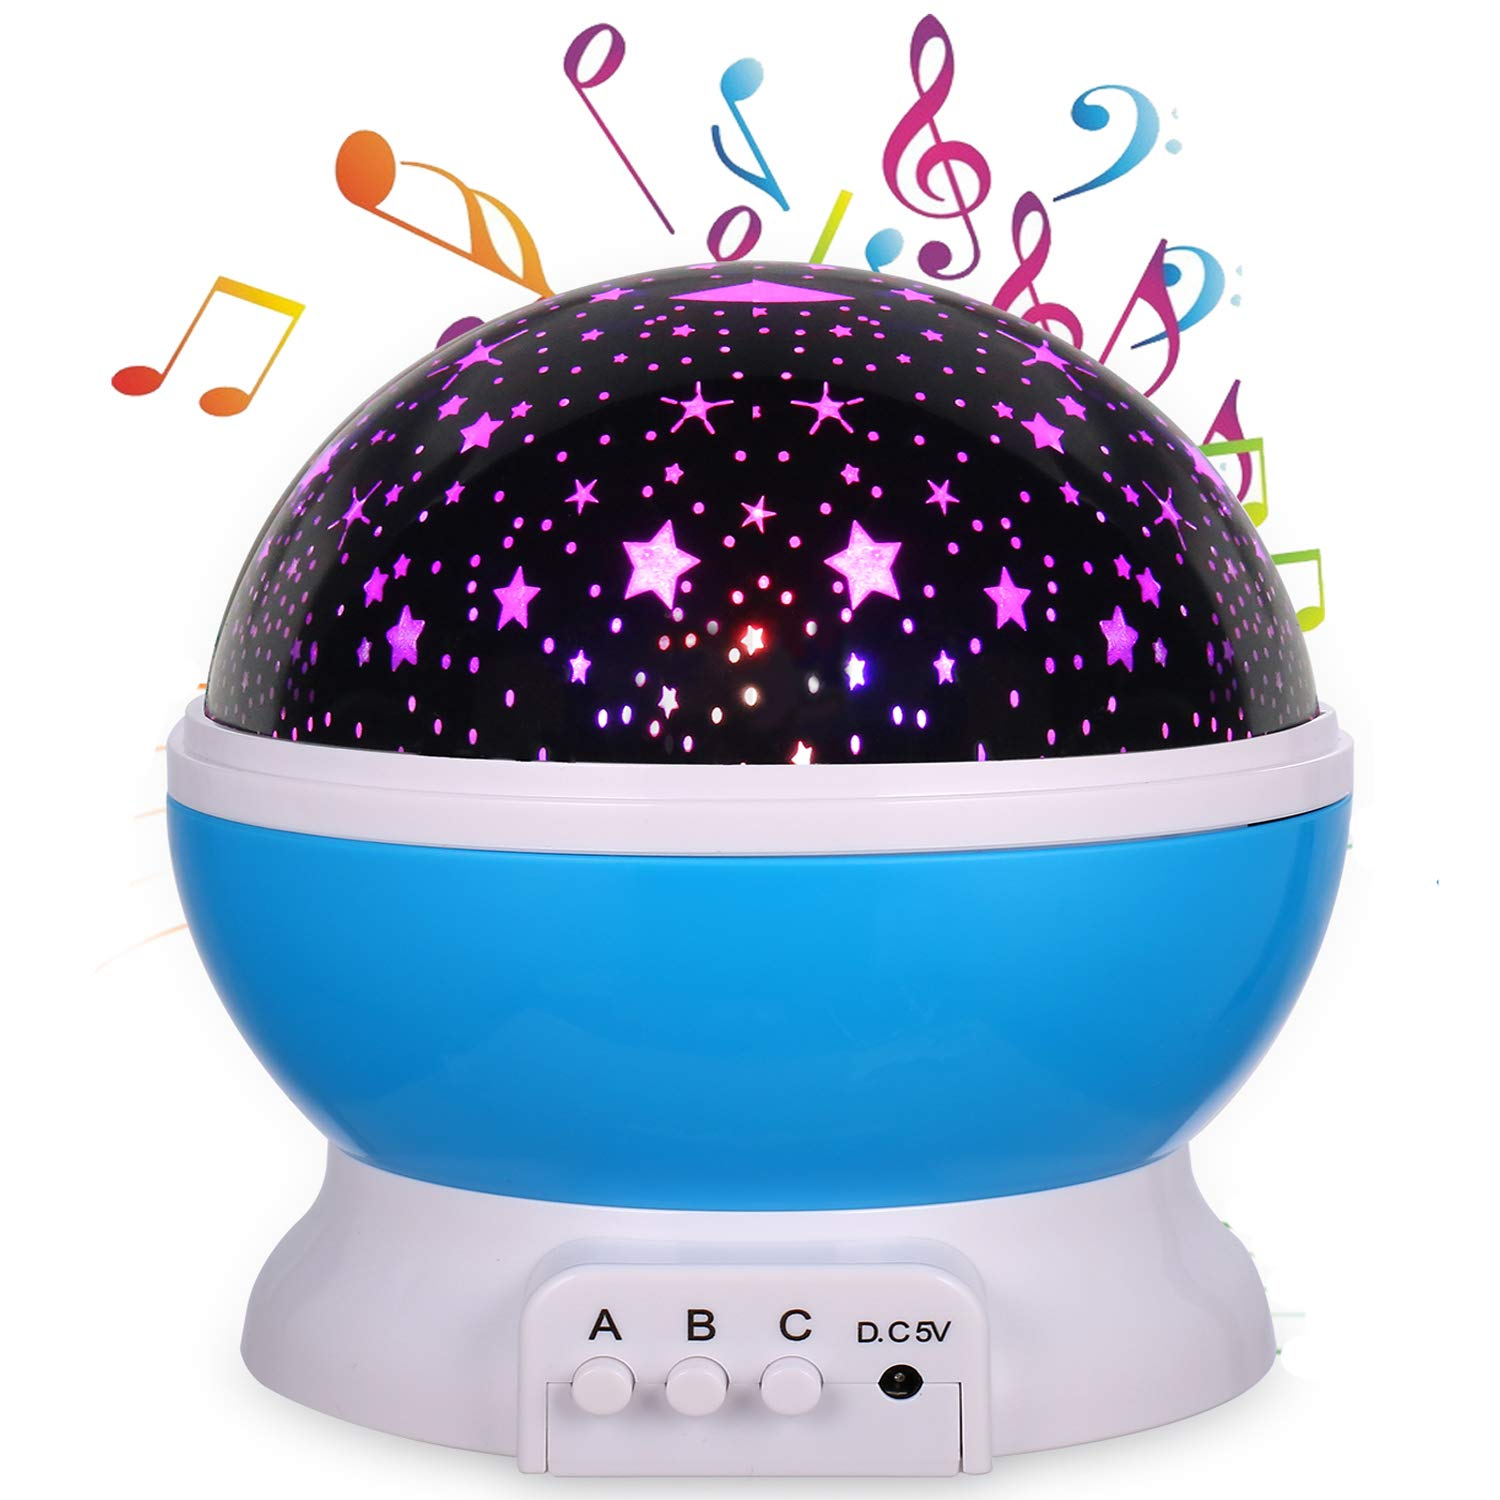 Lullaby Star Projector Night Light,MINGKIDS Rechargeable Stars Moon Projector Warm Night Lamp,Changing Color Light,Rotation,12 Songs,Gift for Babies Children,Nursery (Star Moon Projector)